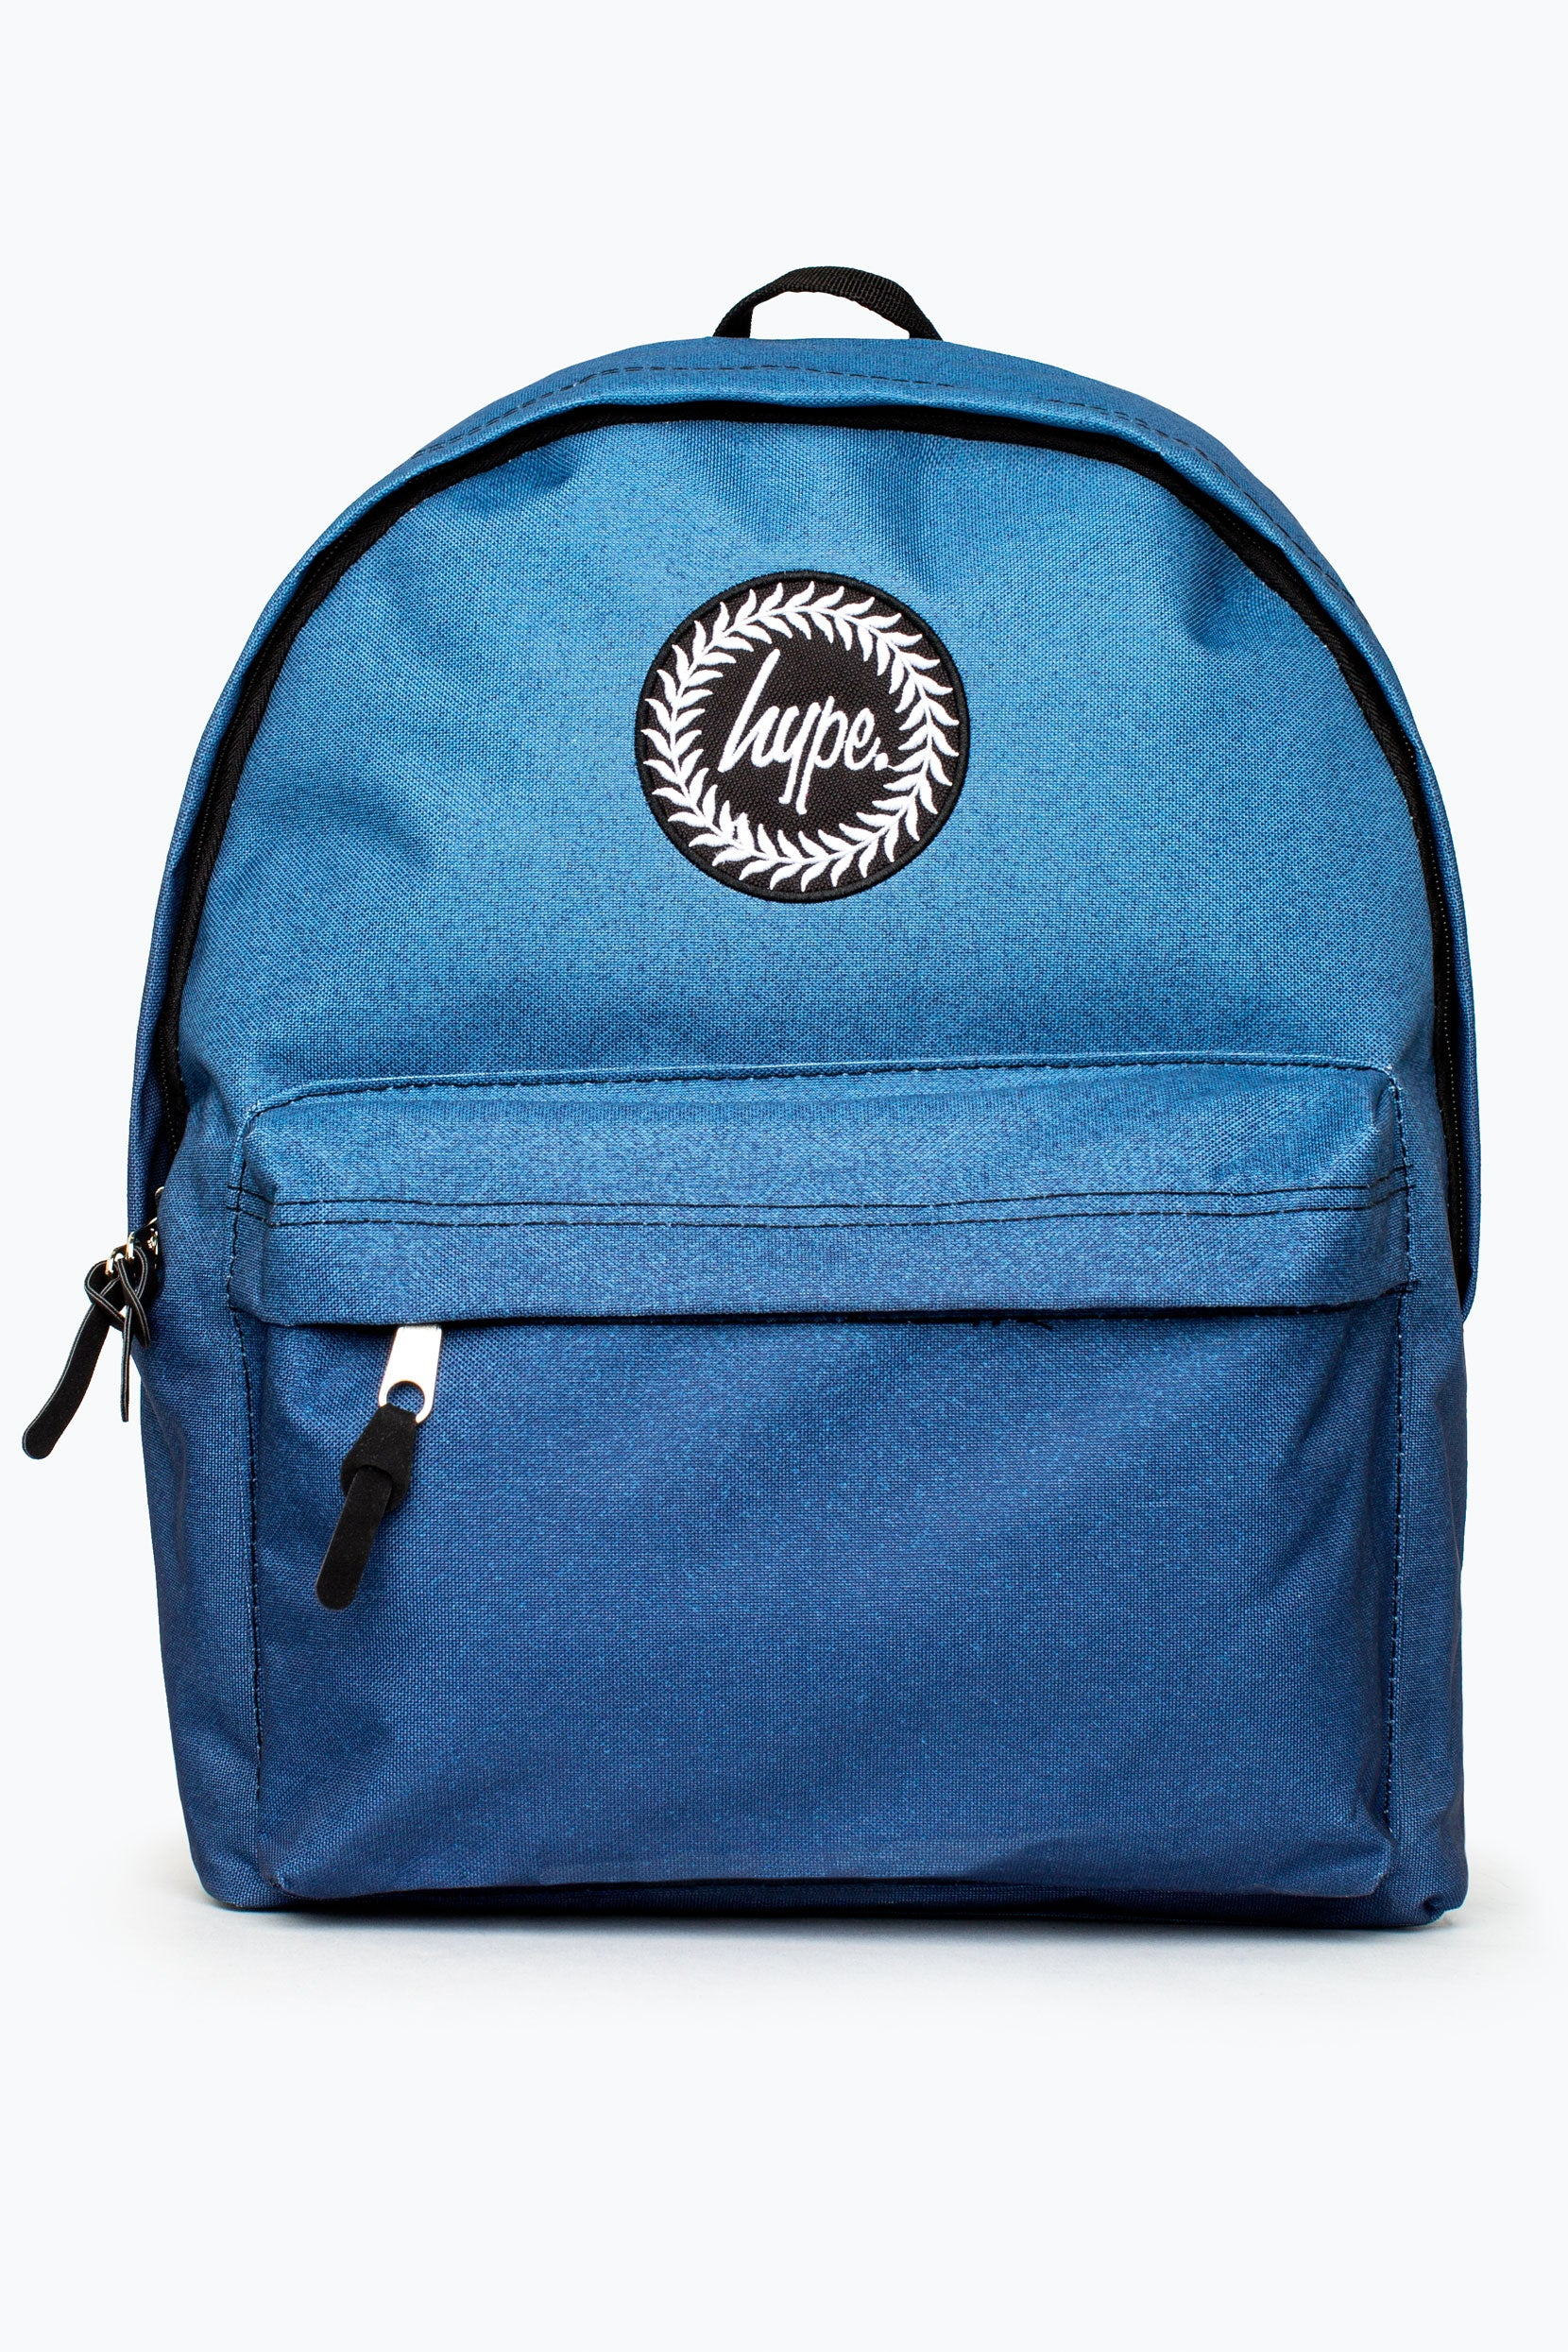 factory outlet size 40 100% quality HYPE BLUE SPECKLE FADE BACKPACK | Justhype ltd